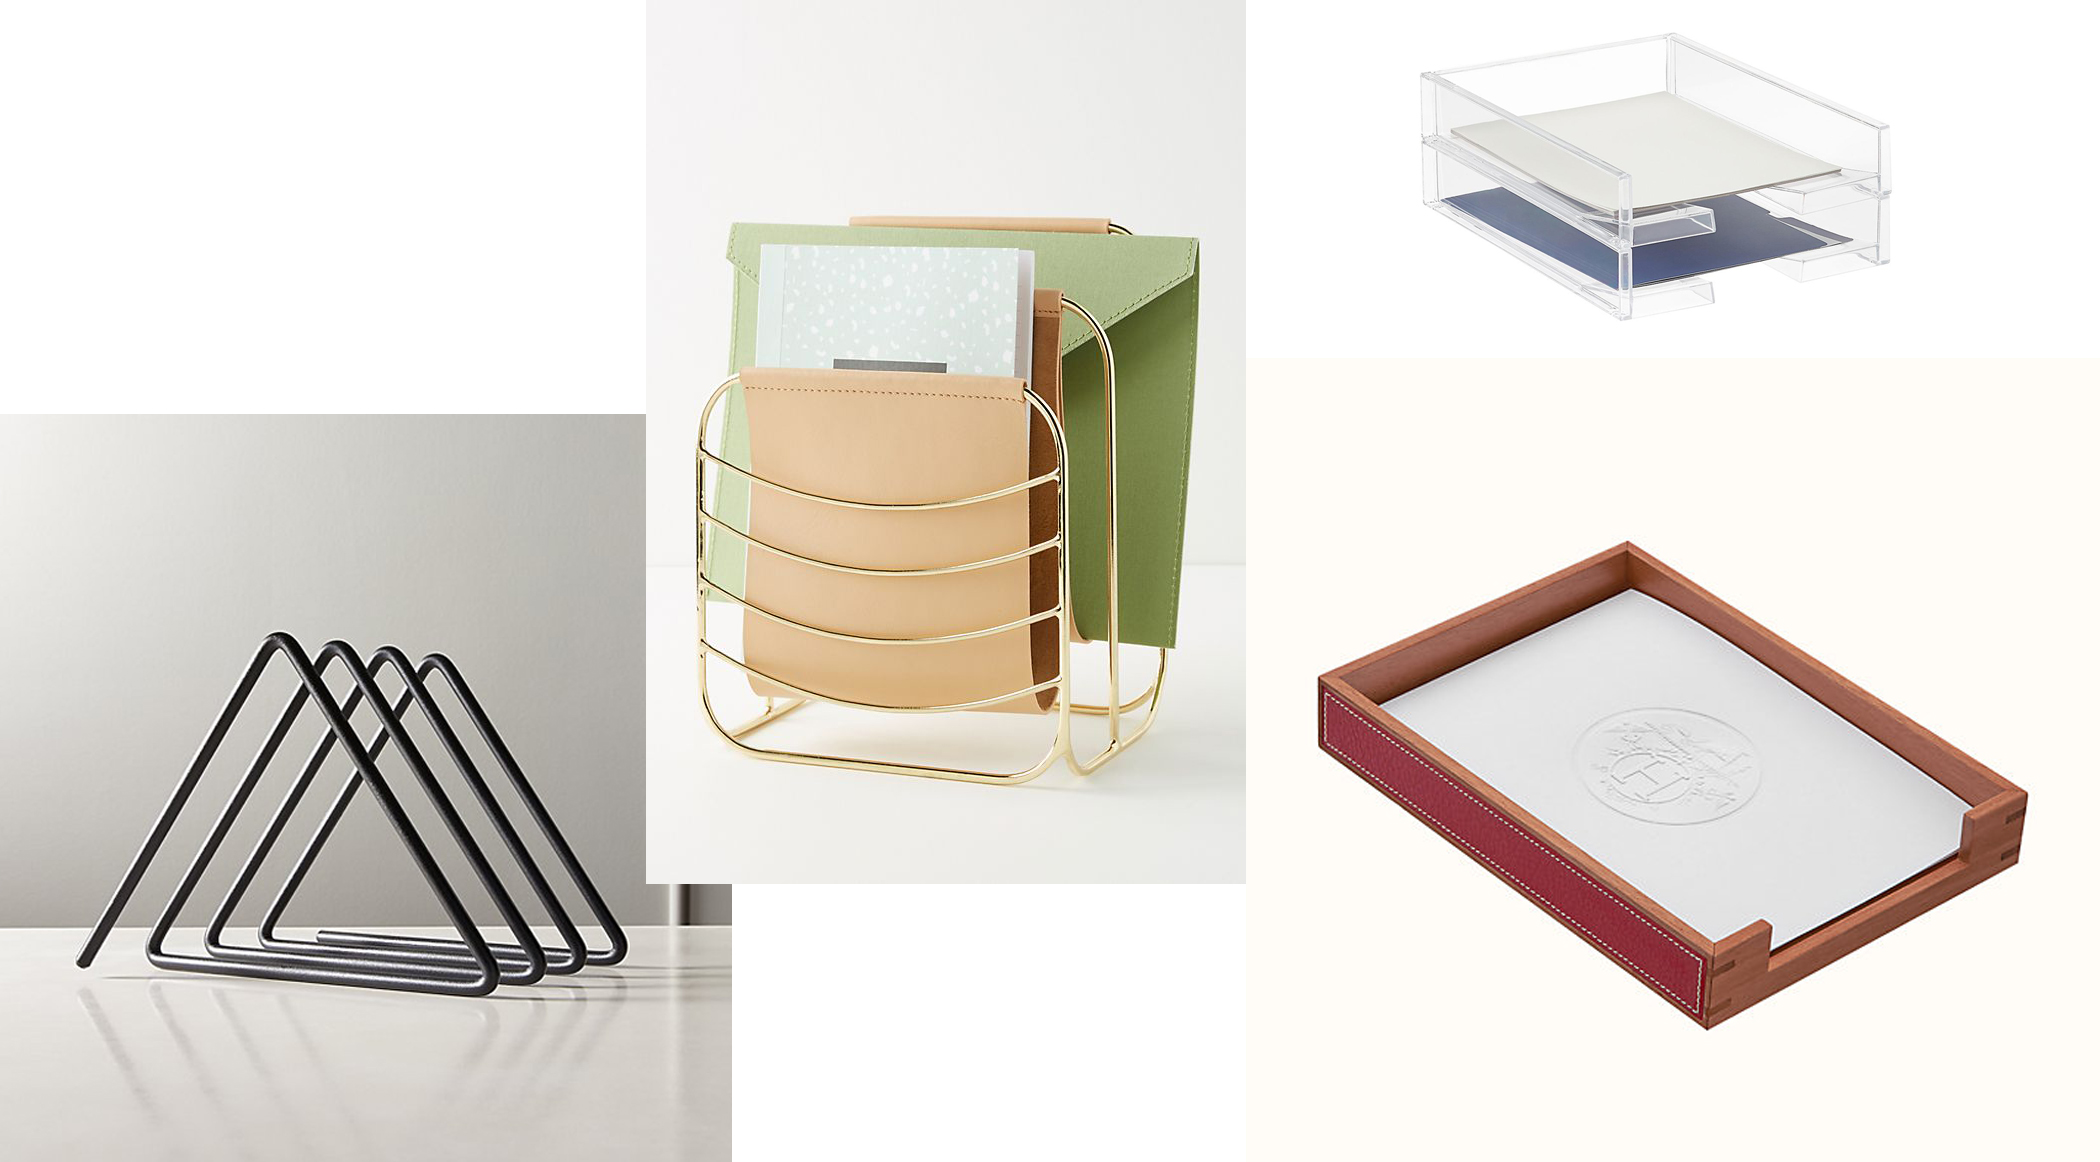 HERMES TRAY  |  ACRYLIC TRAYS  |  BRASS FILE RACK  |  BLACK COIL FILE HOLDER